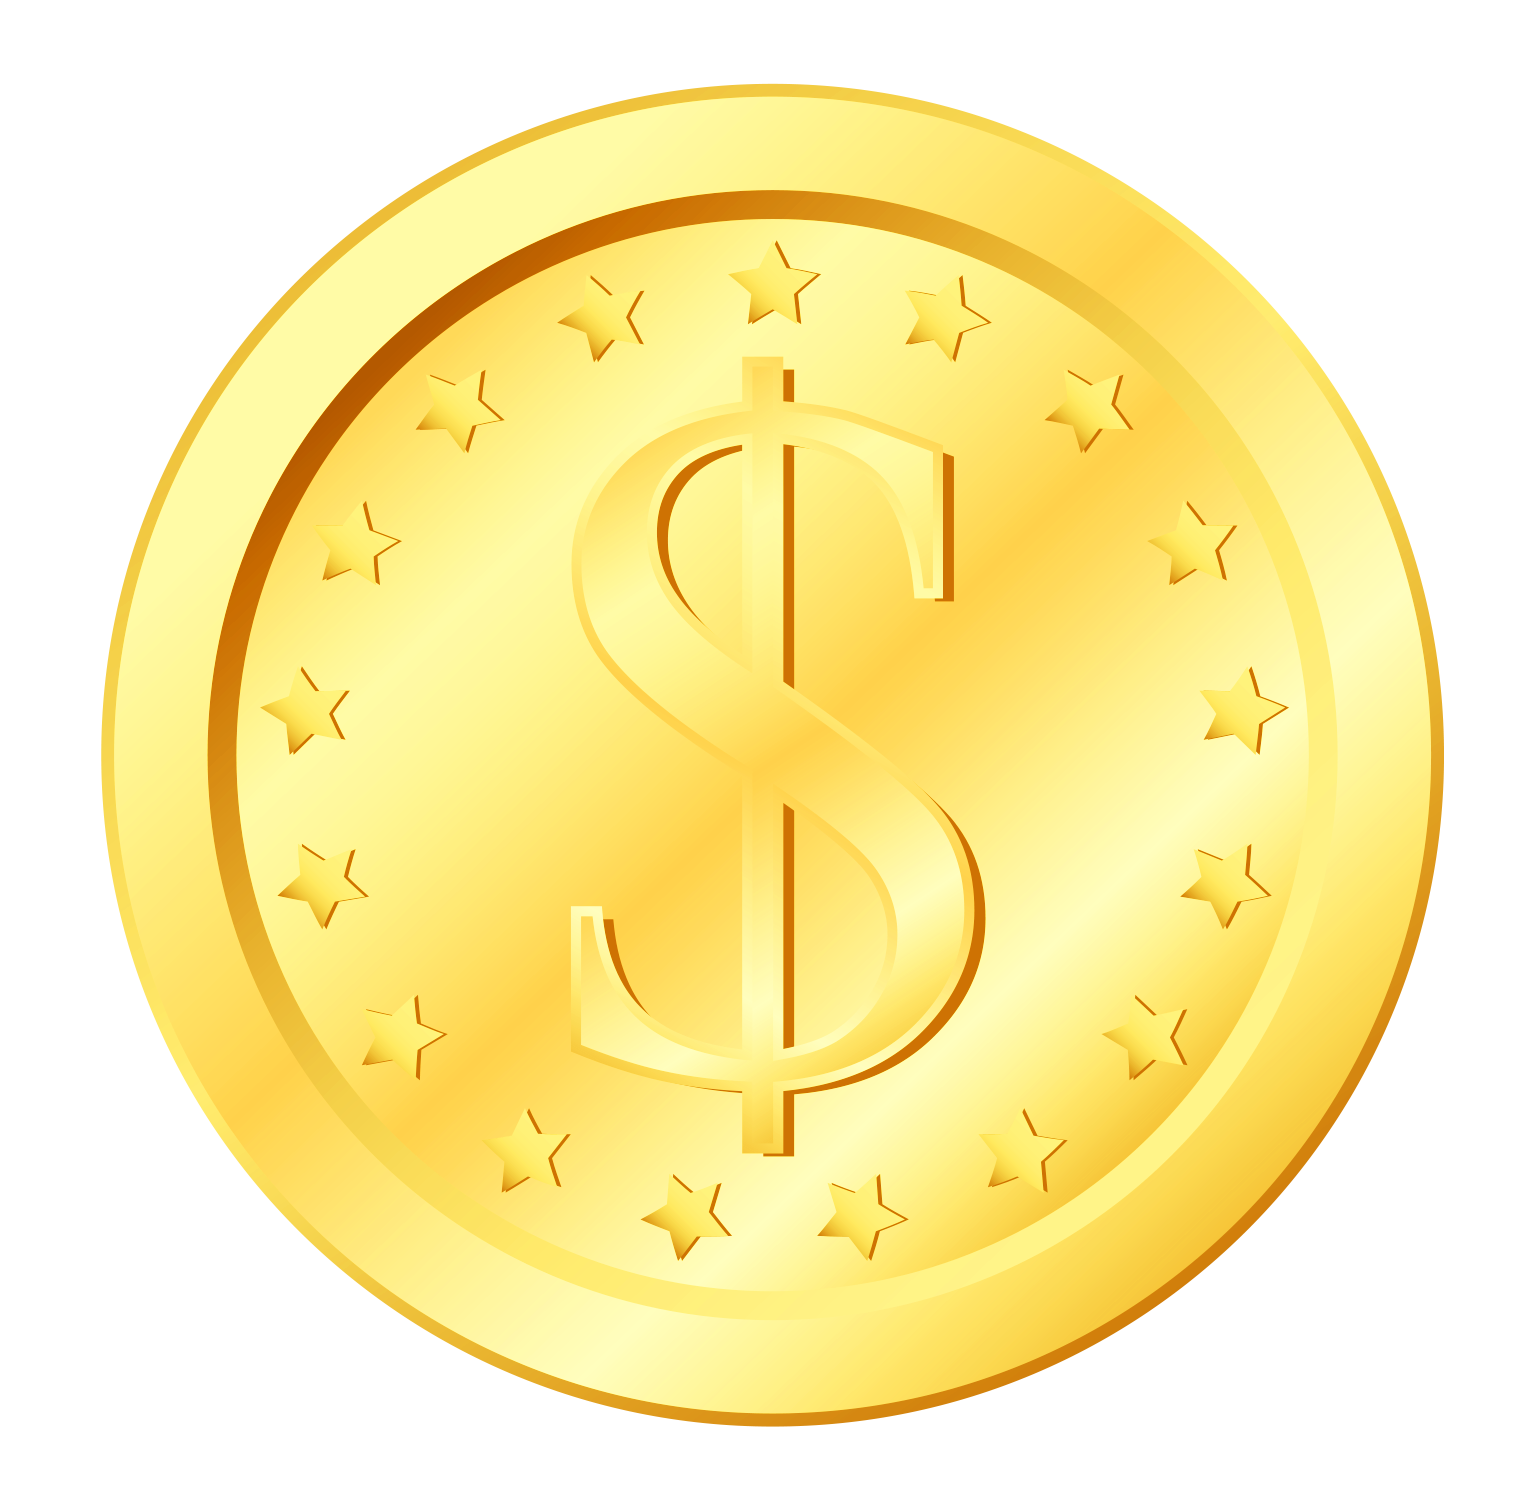 Gold_Coin_Transparent_PNG_Clipart.png